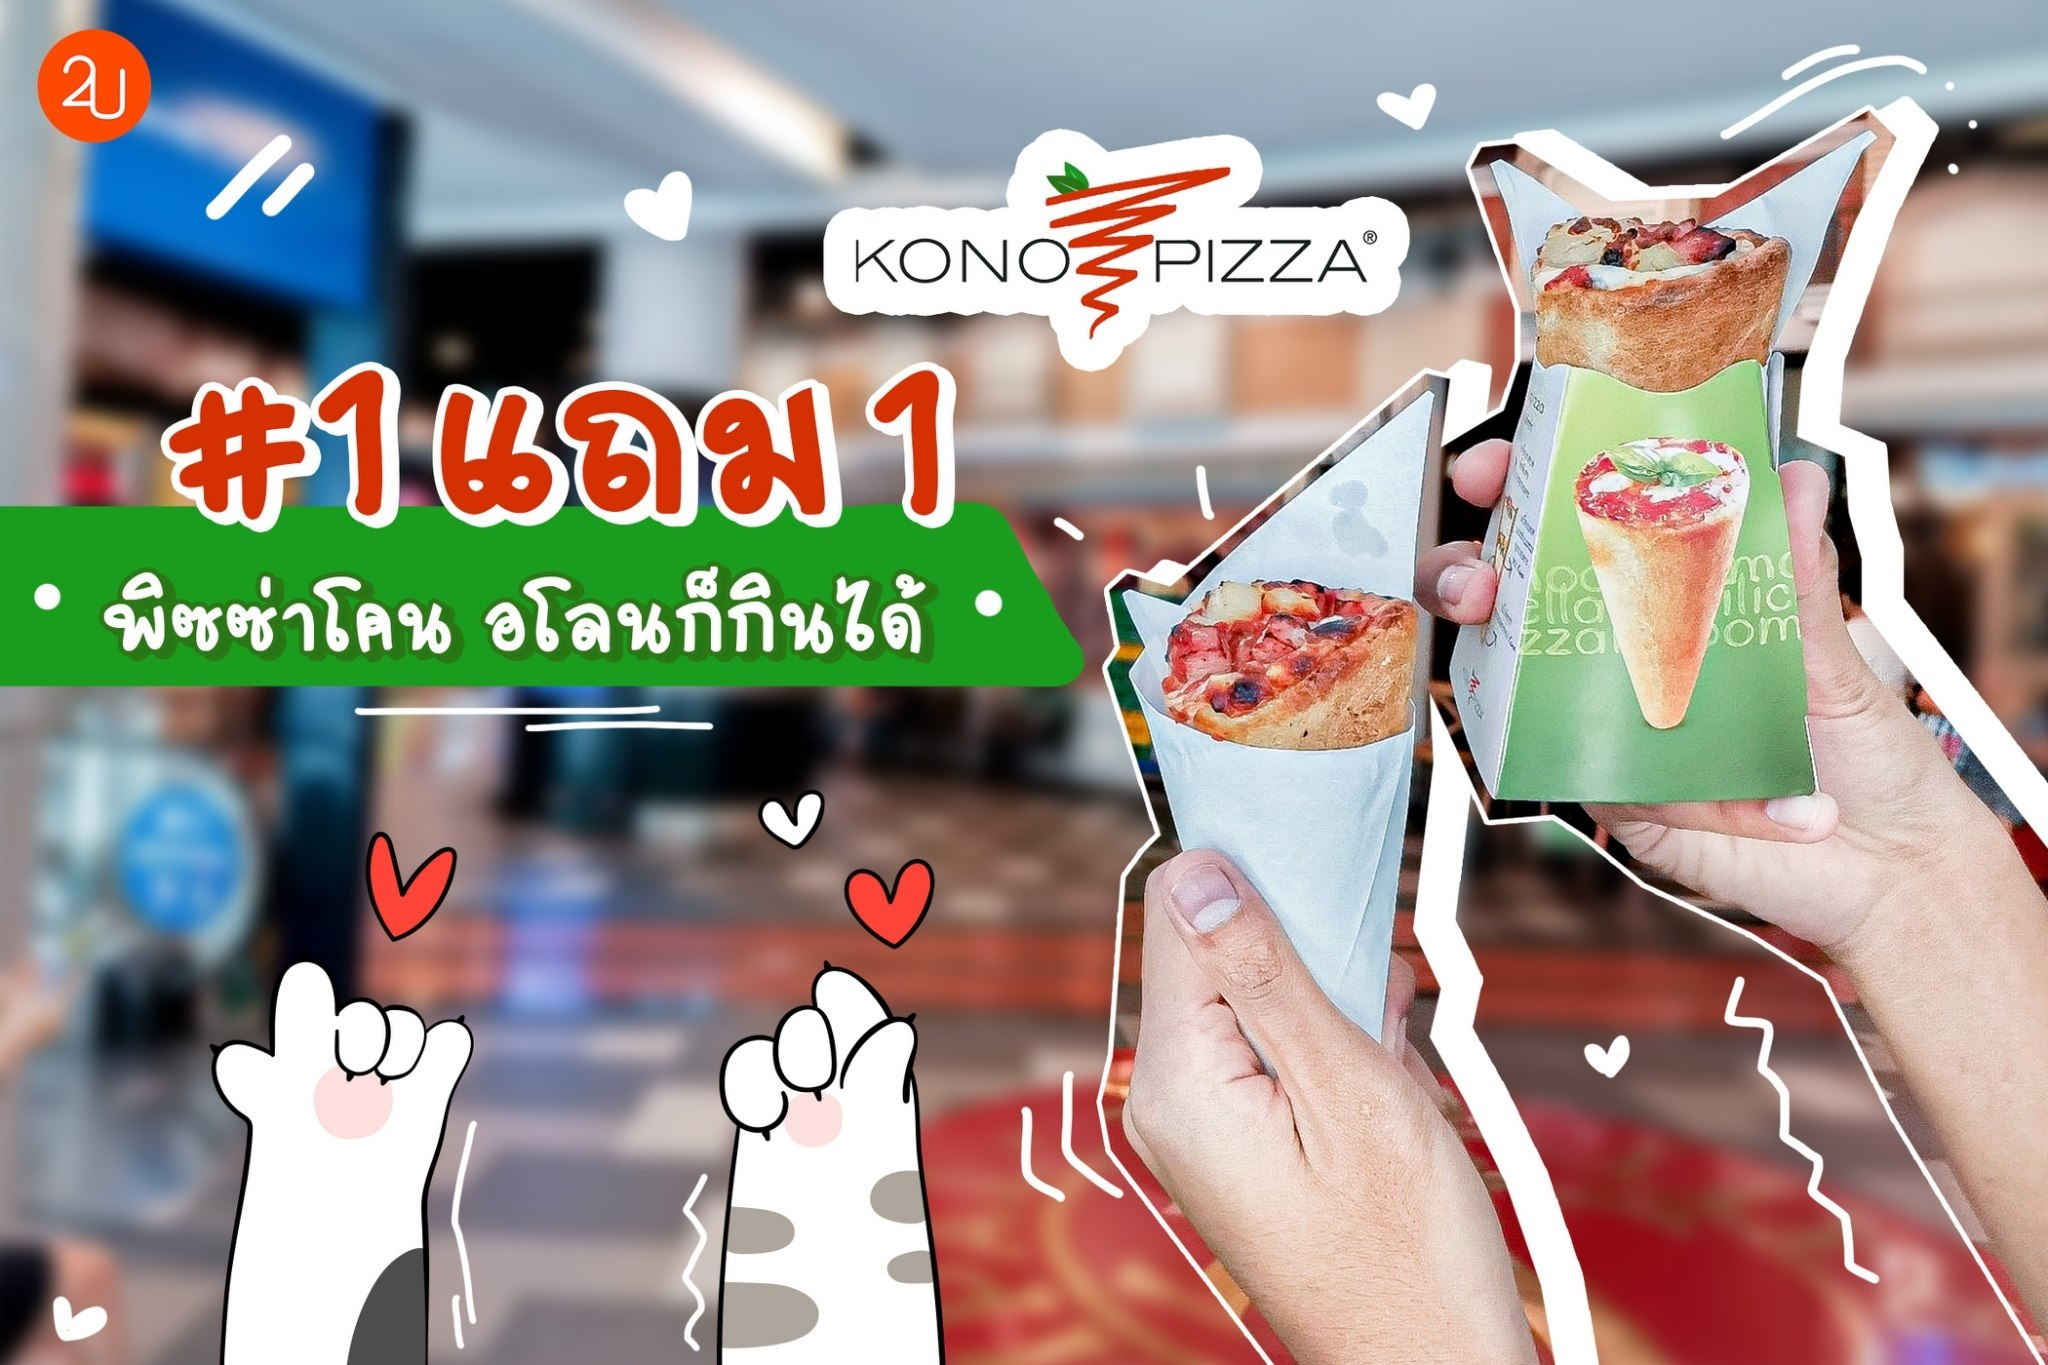 promotion Kono Pizza sale 119 bath and buy 1 get free 1